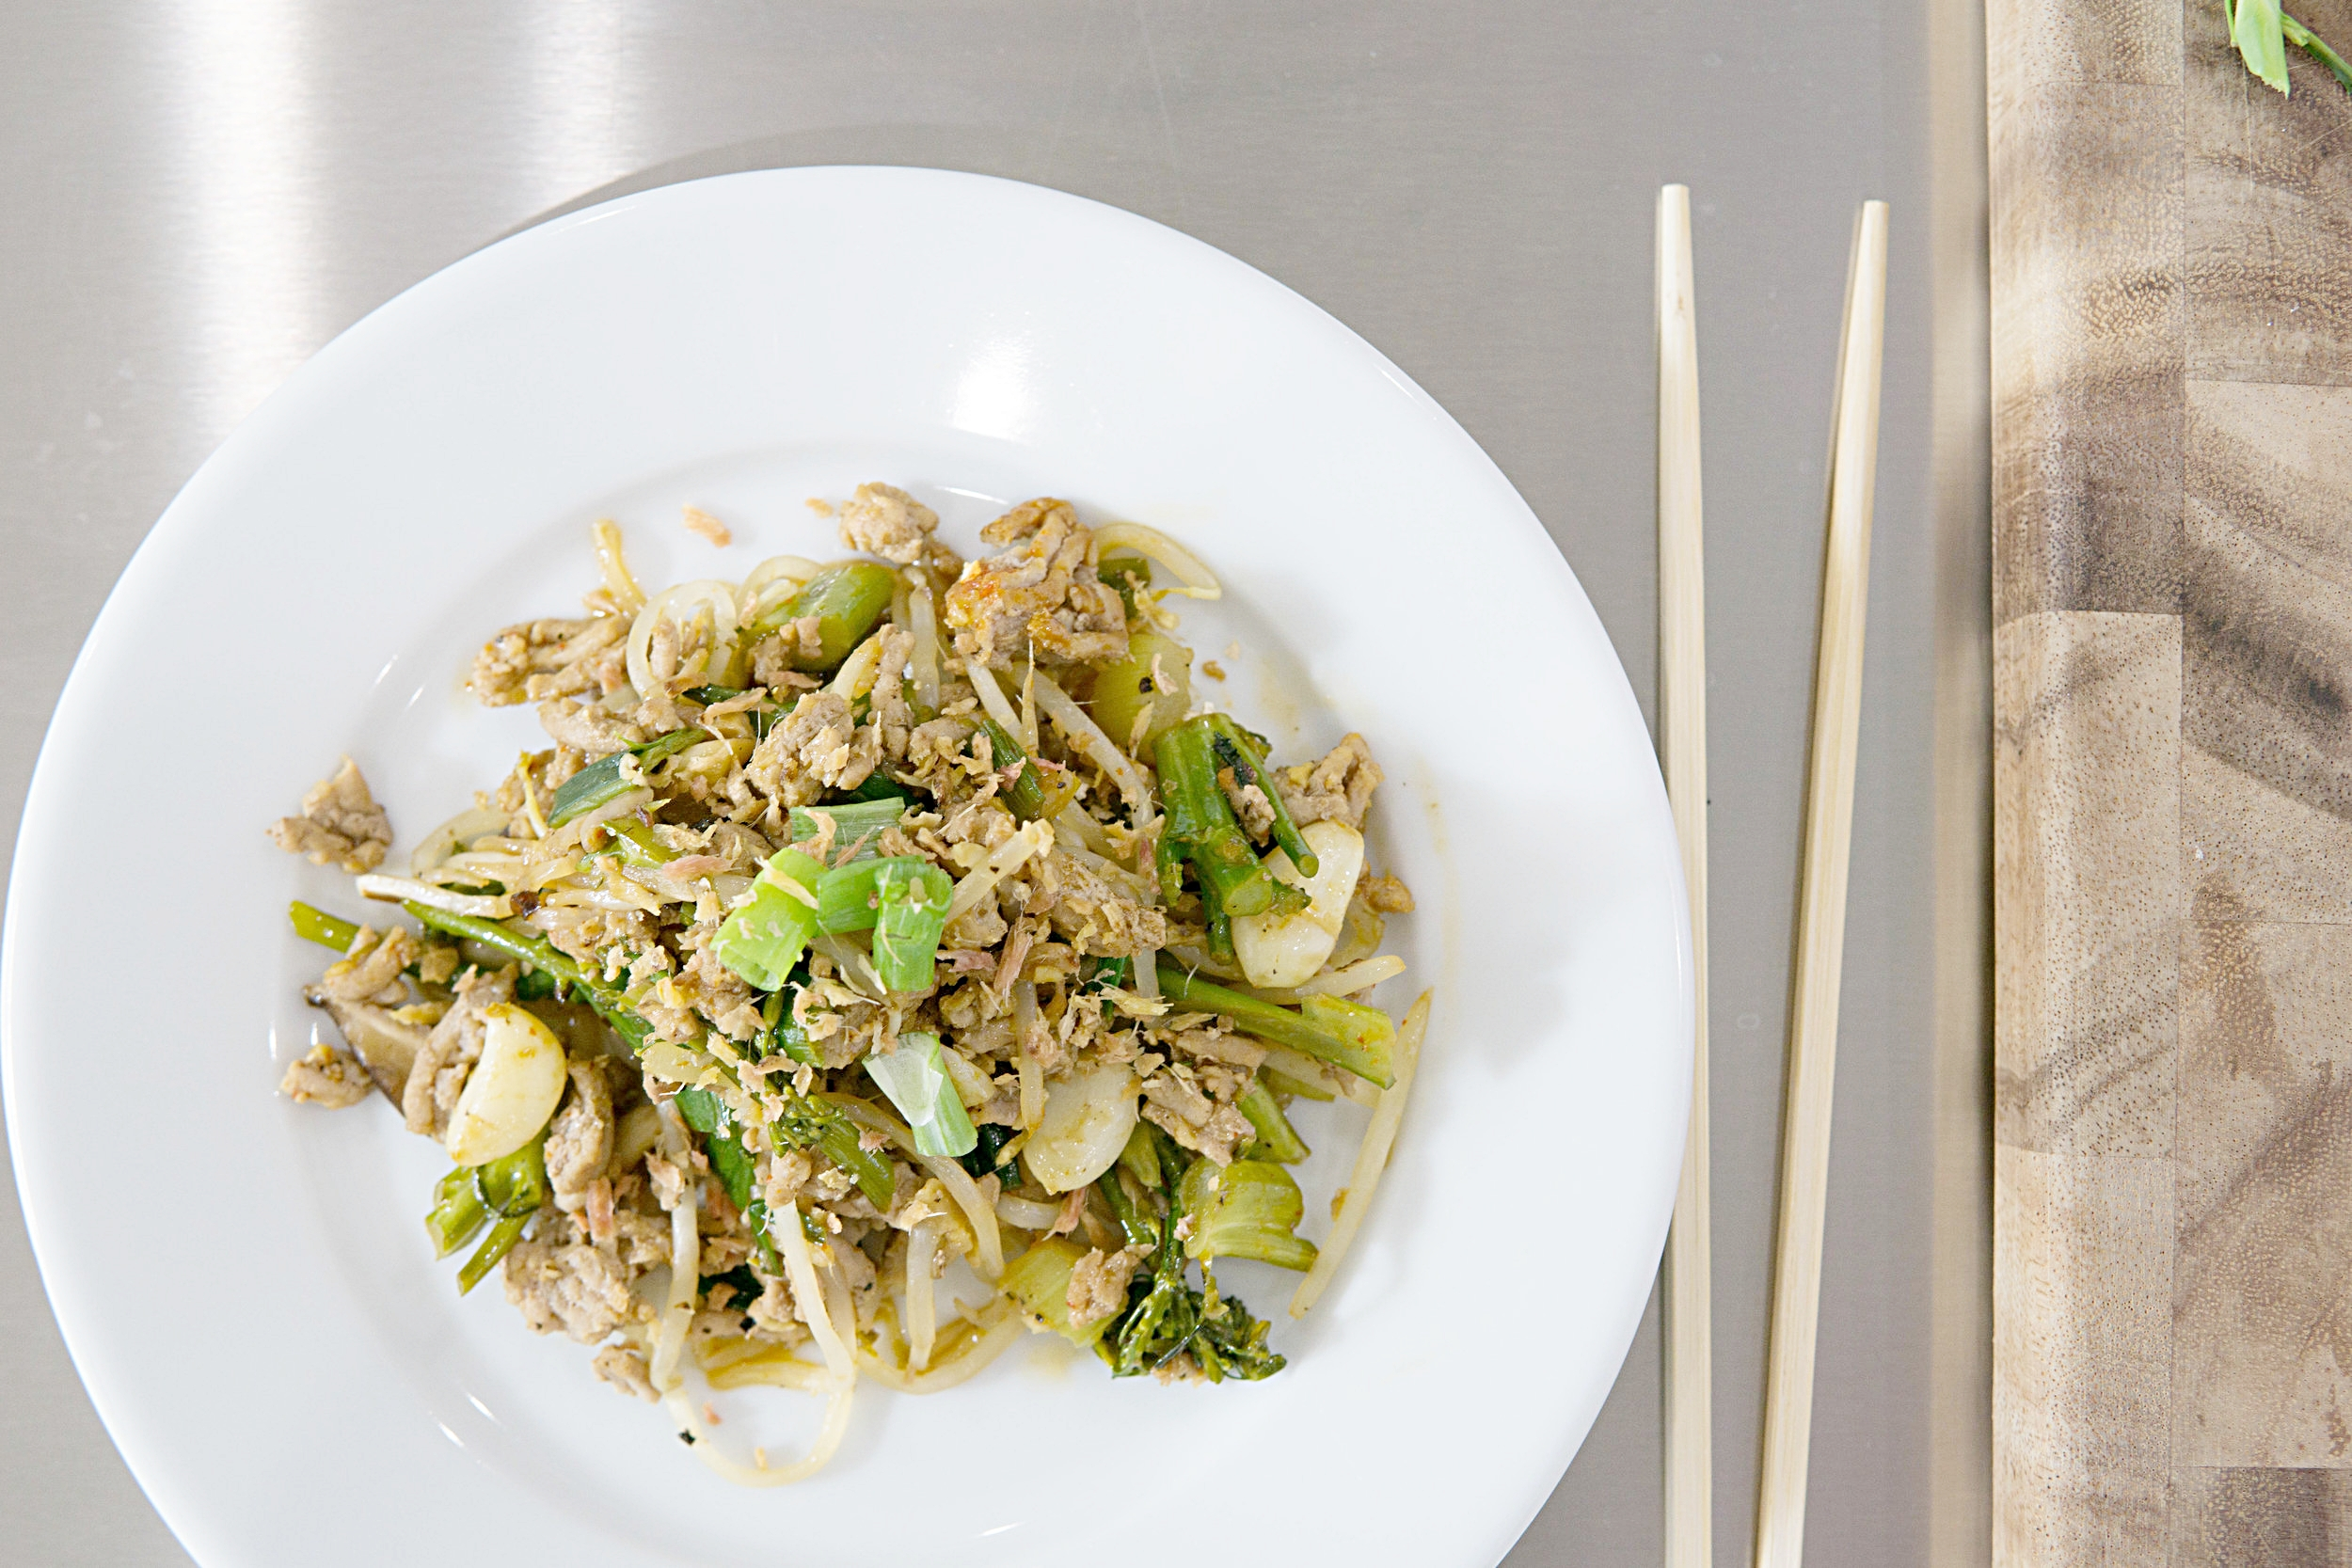 ground-turkey-broccoli-stir-fry-healthy-recipe (1 of 10).jpg